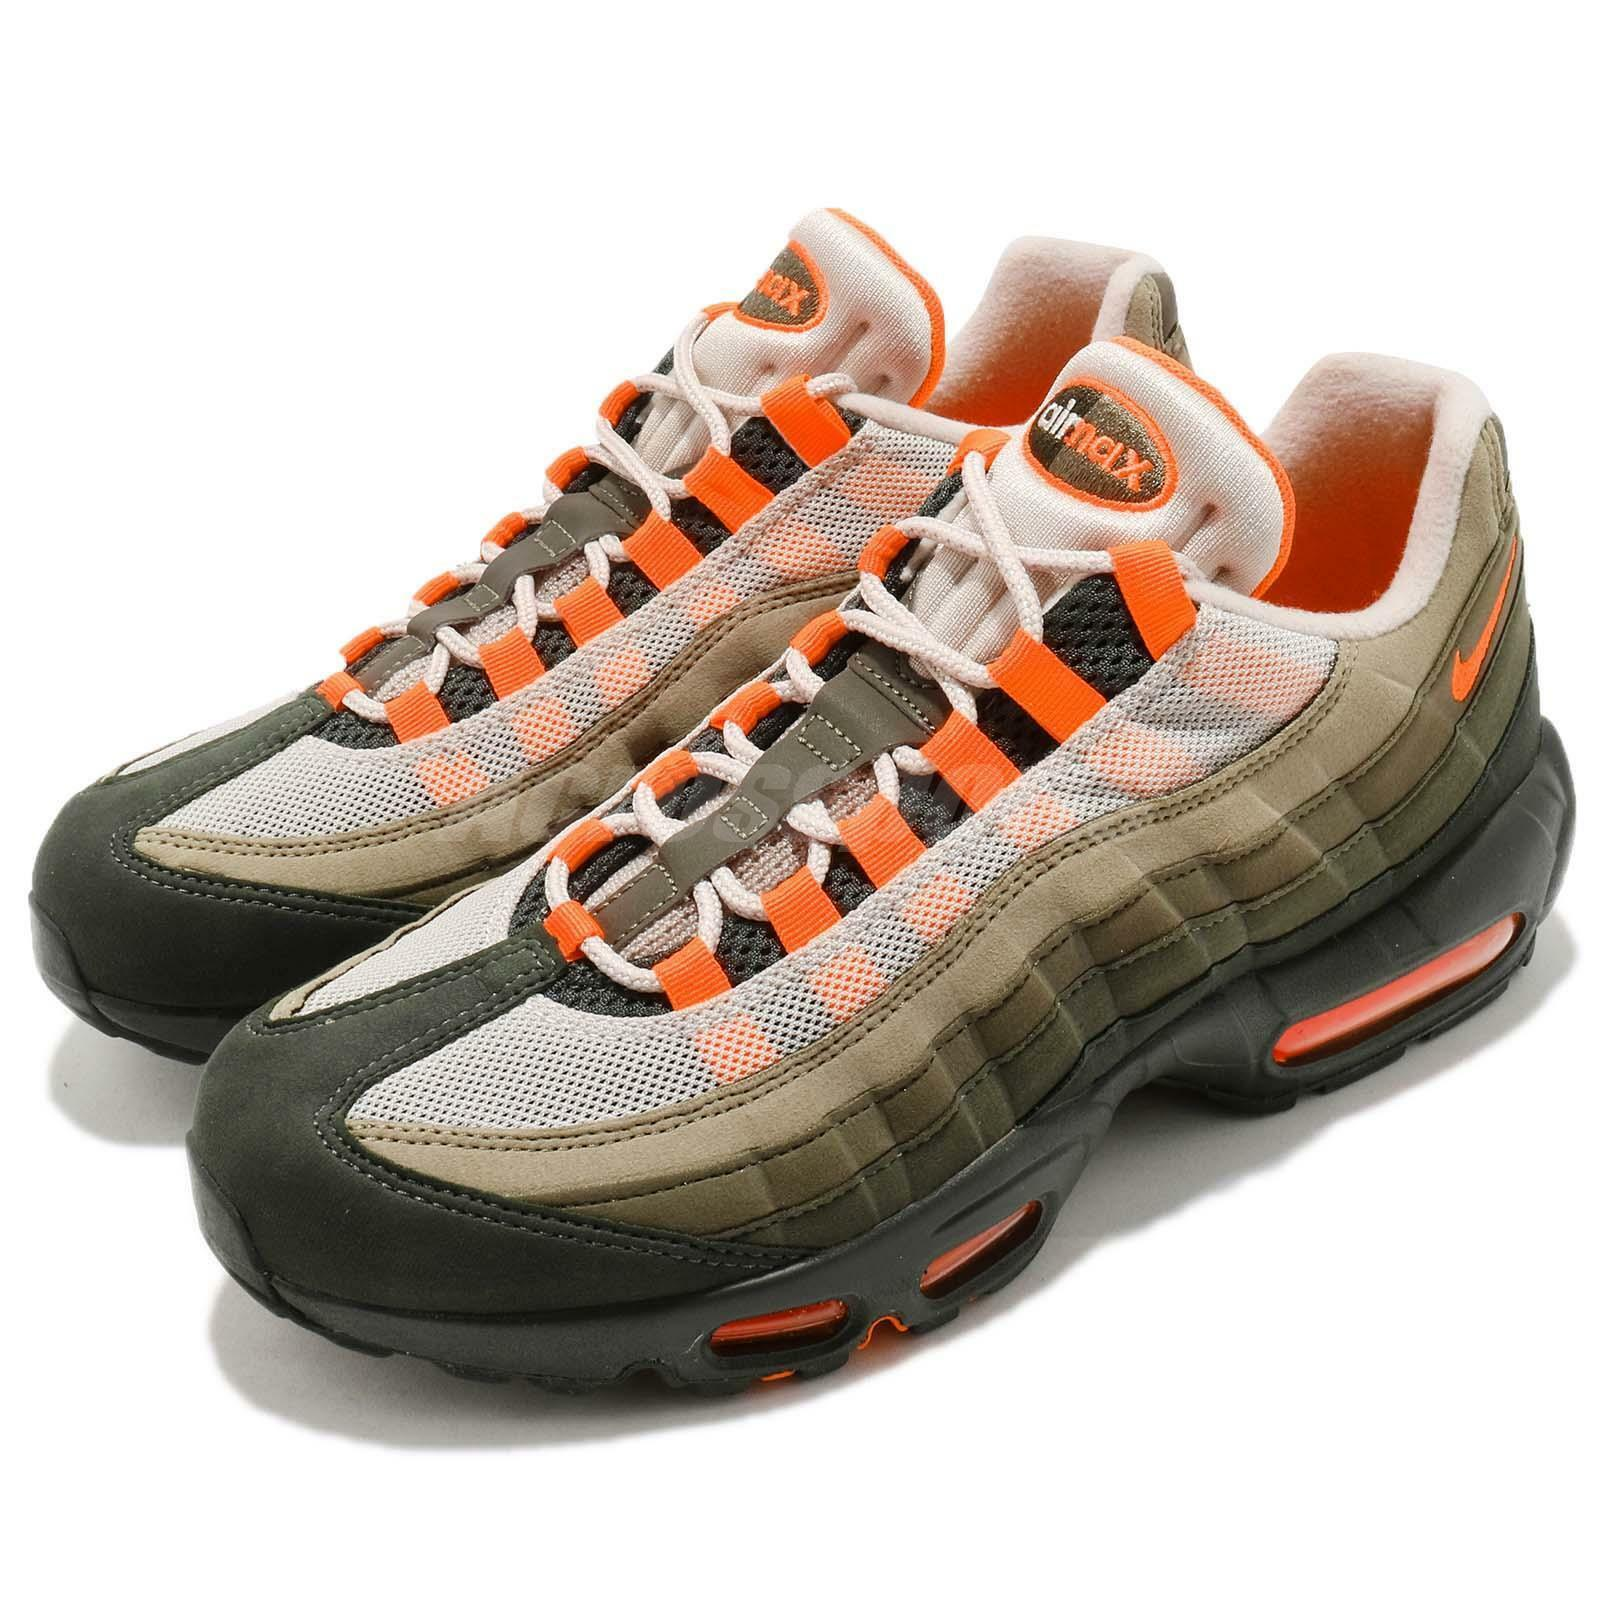 Nike Air Max 95 OG String Green Total Orange Neutral Olive NSW Chaussures AT2865-200